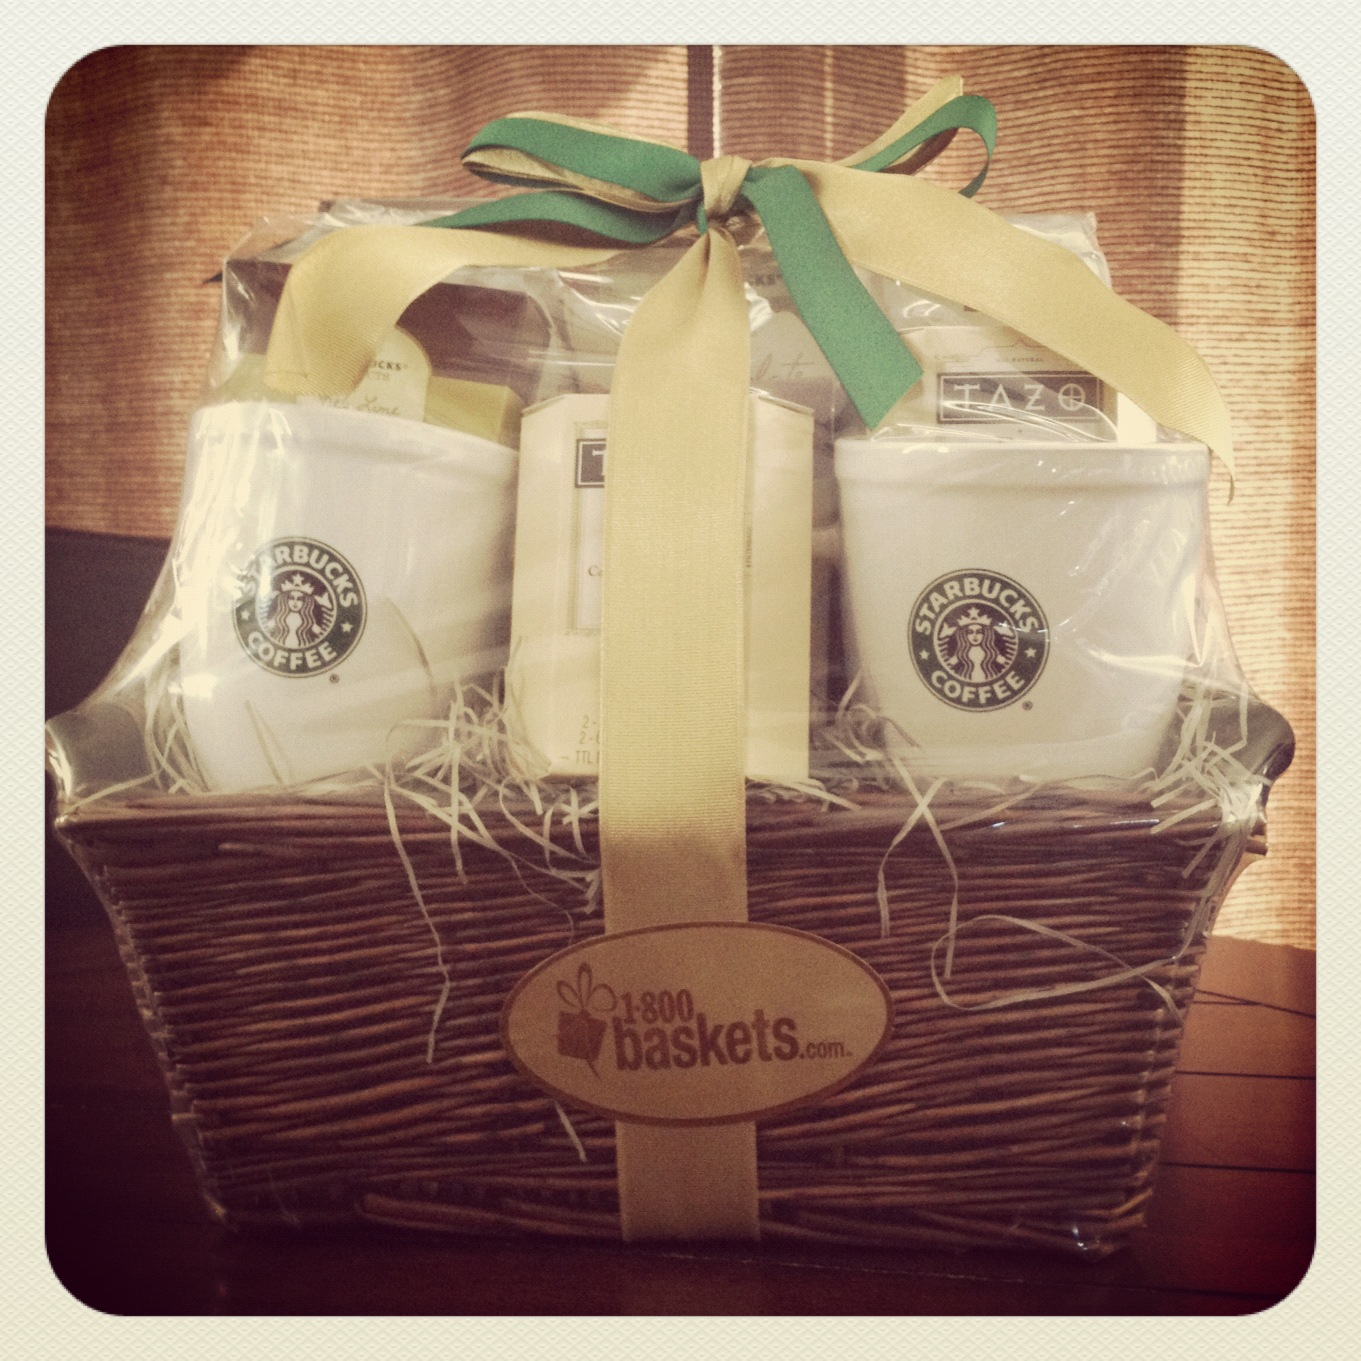 Starbucks Break Time Gift Basket - 1800Baskets